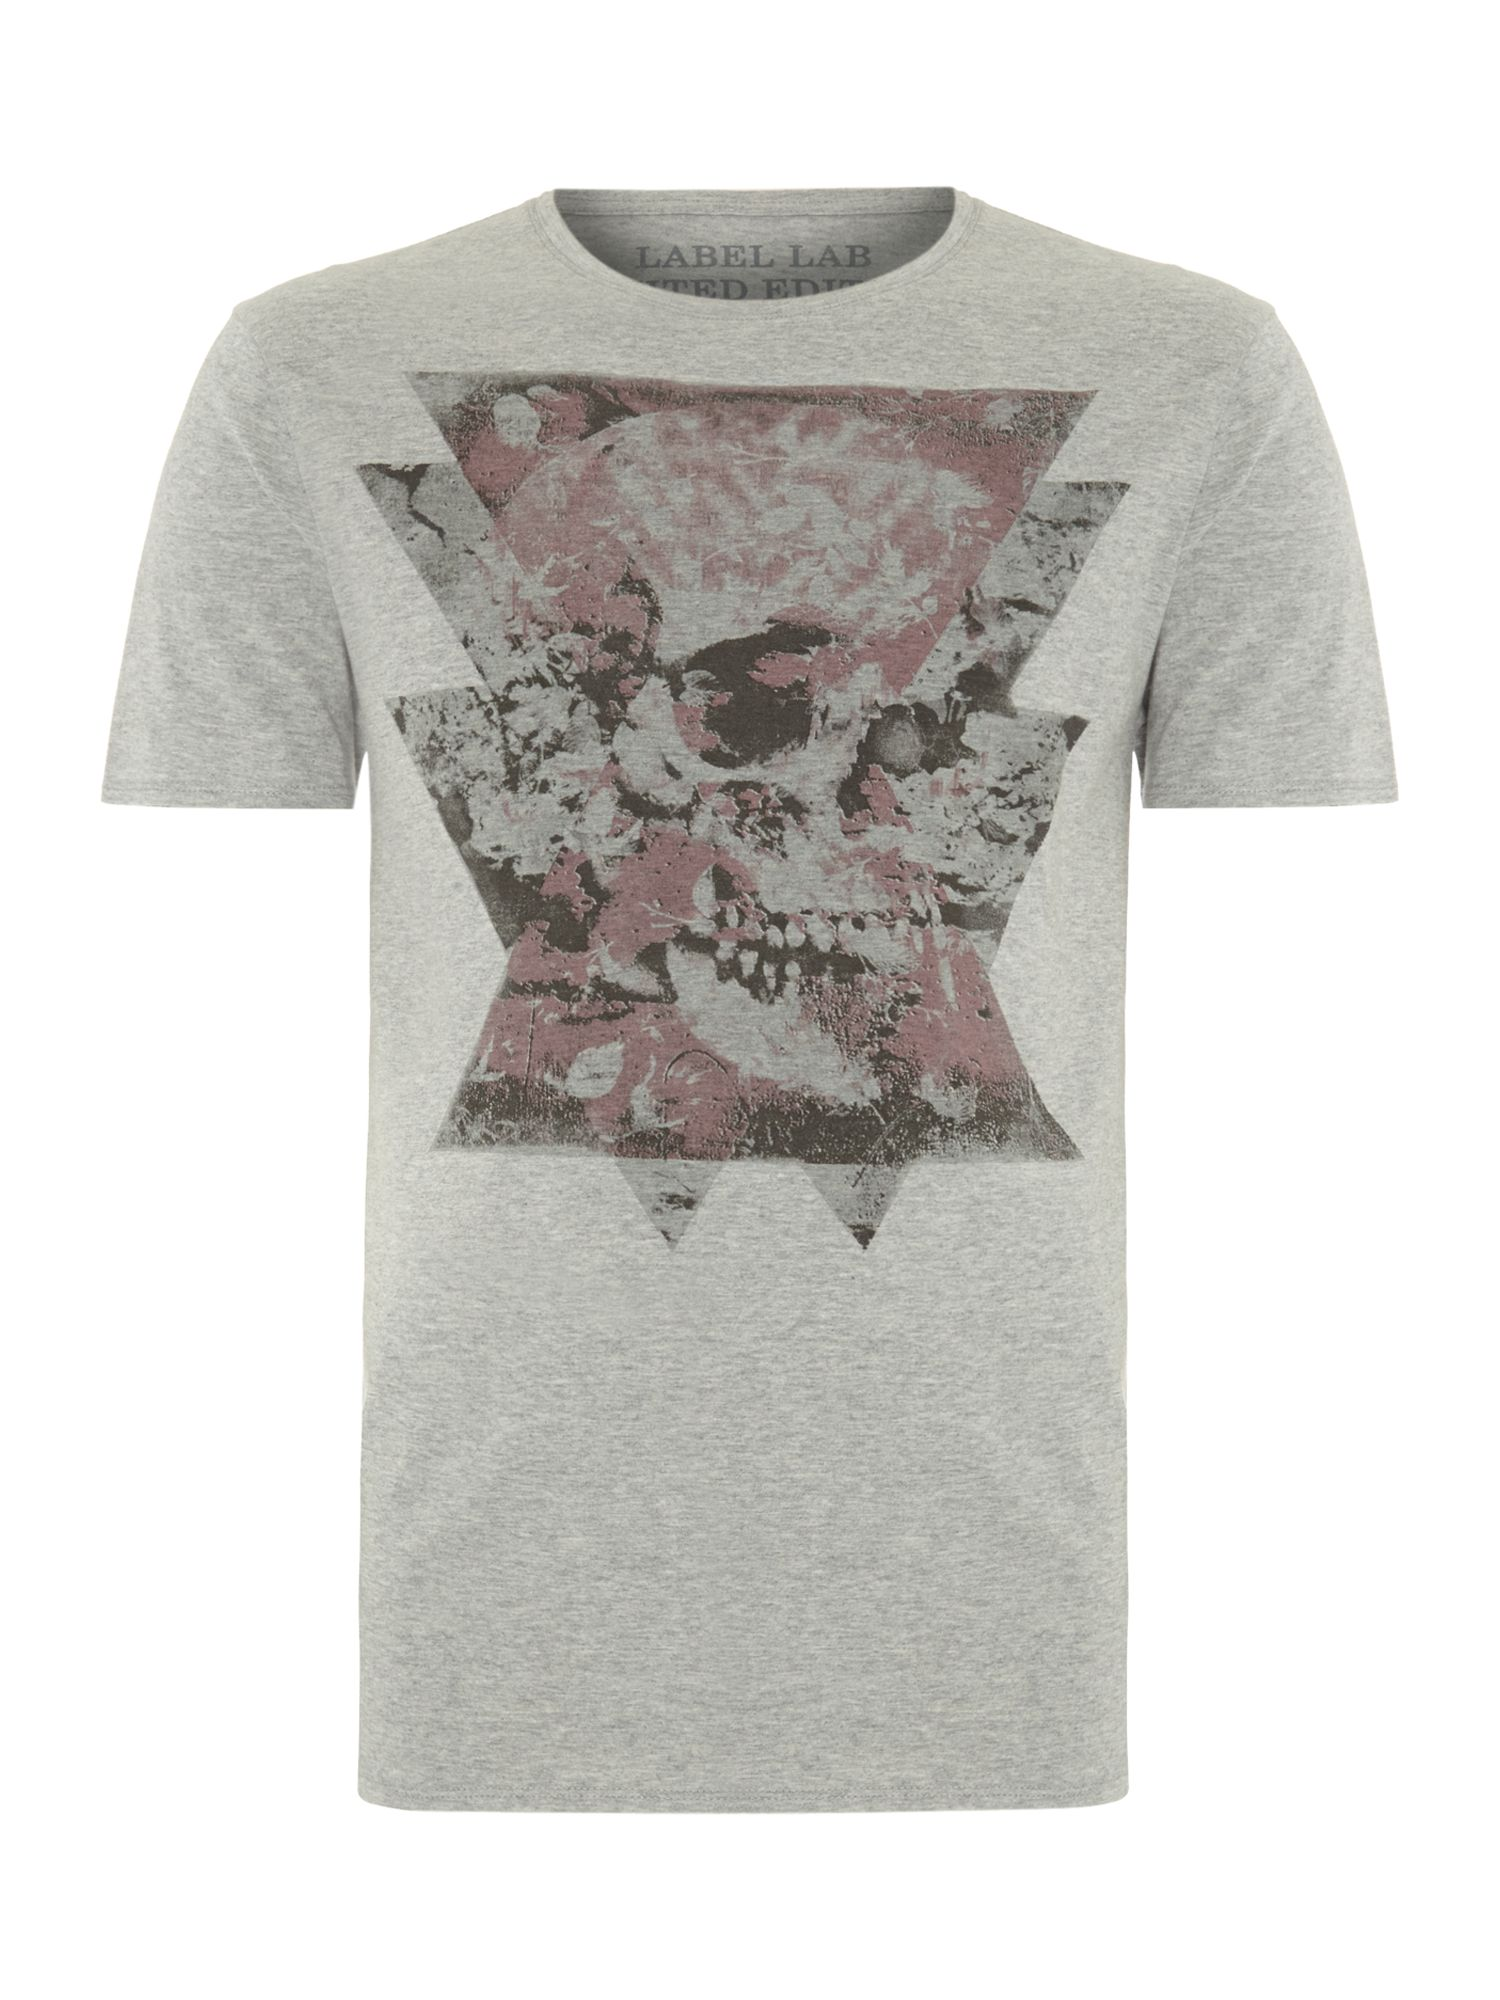 Hex graphic tee